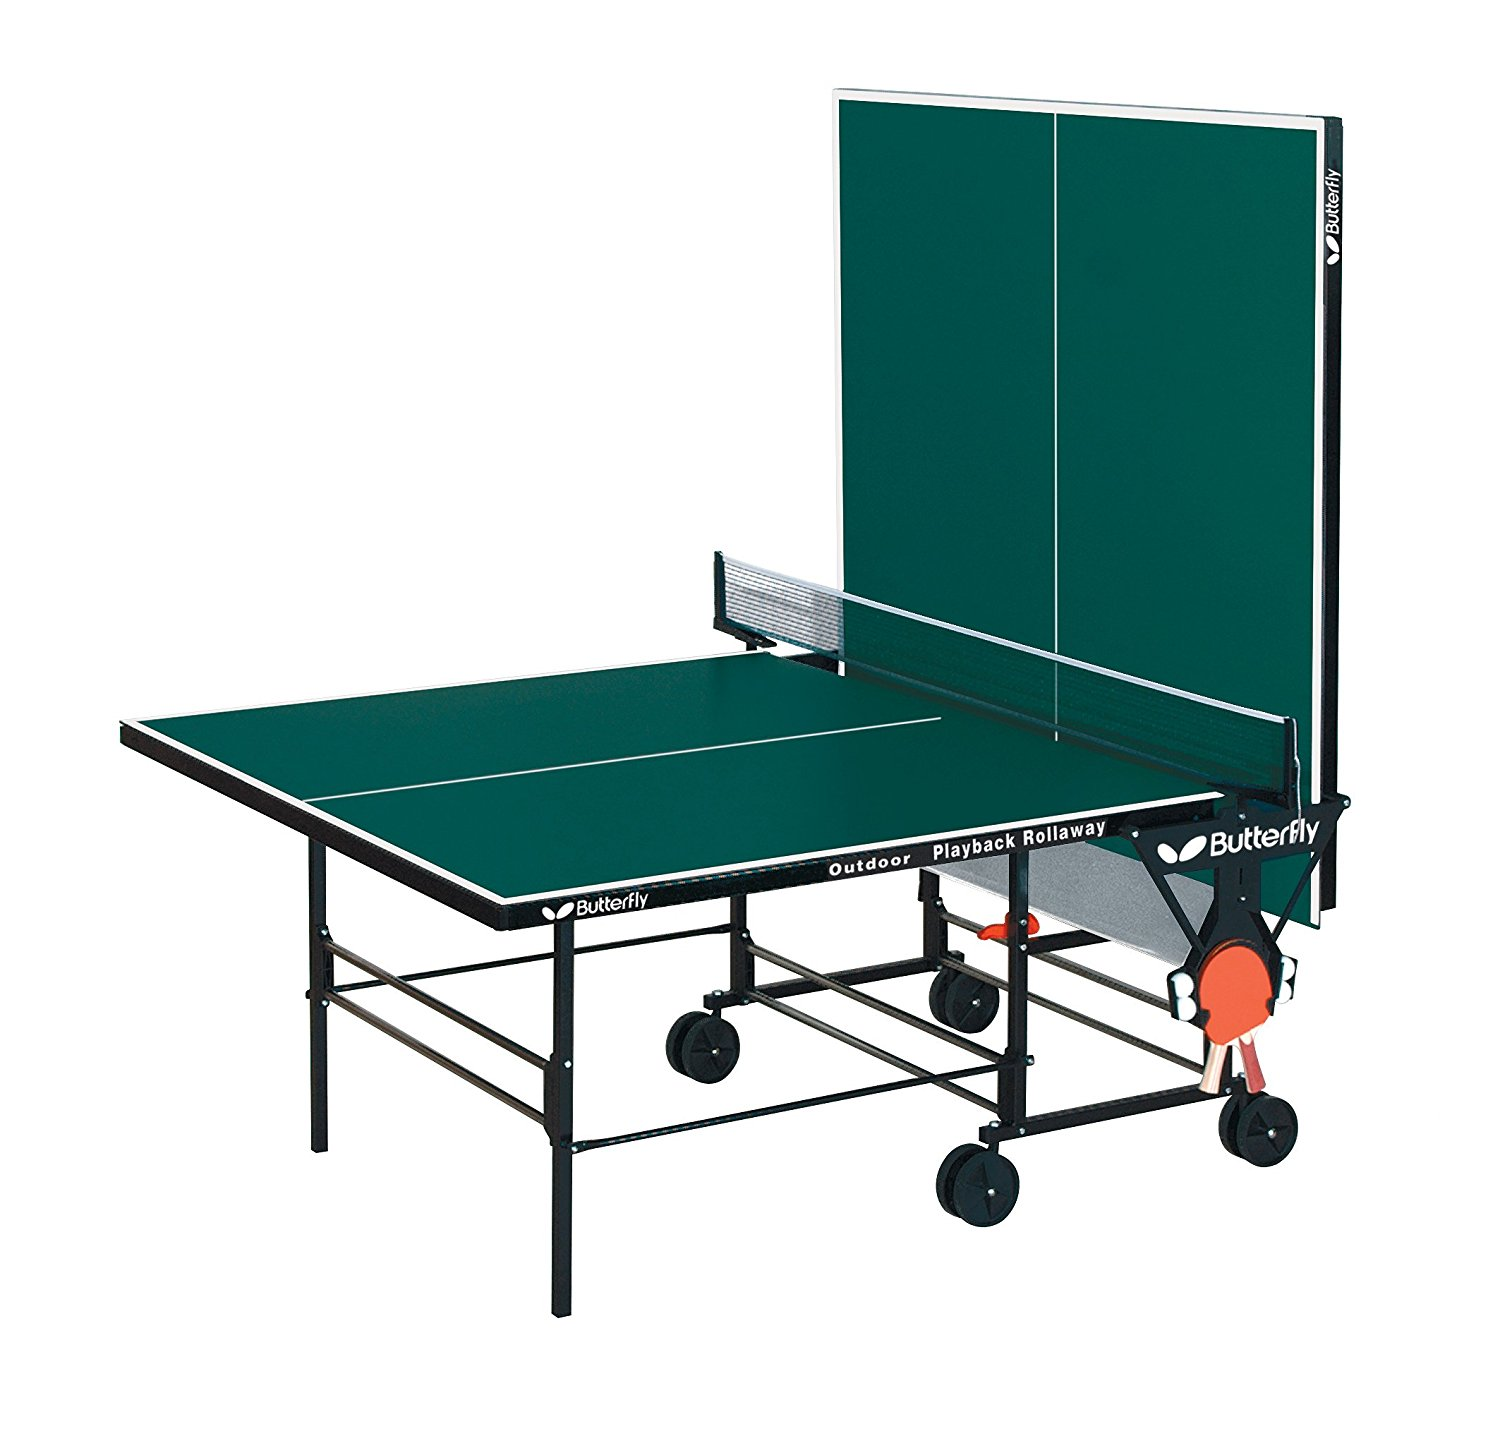 butterfly outdoor playback rollaway best outdoor ping pong tables. Black Bedroom Furniture Sets. Home Design Ideas